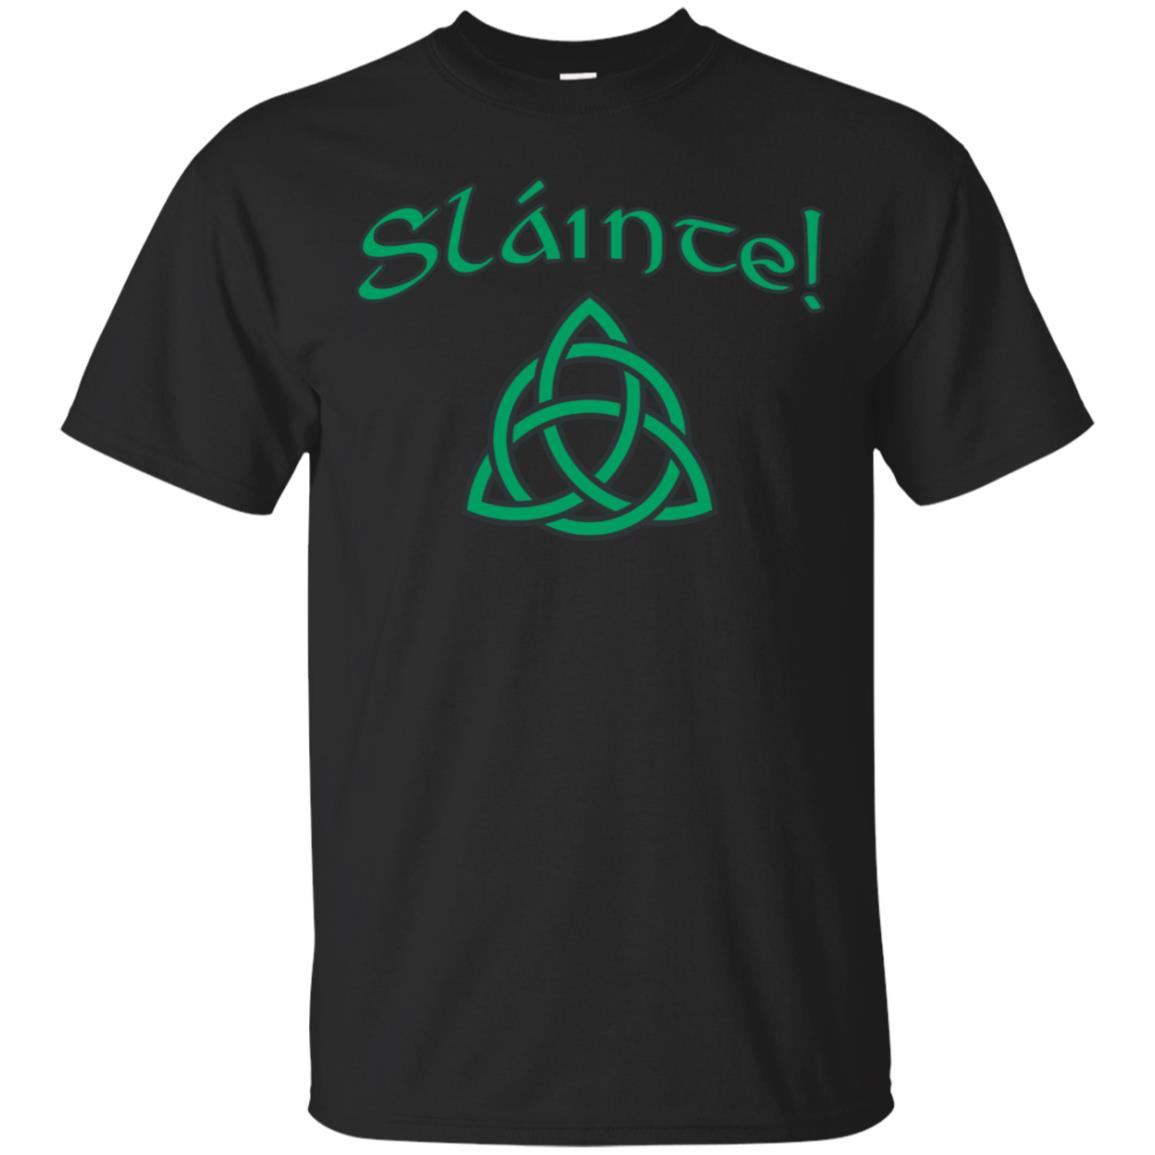 Slainte! St. Patty's Irish Gaelic Cheers Celtic Knot T-Shirt 99promocode